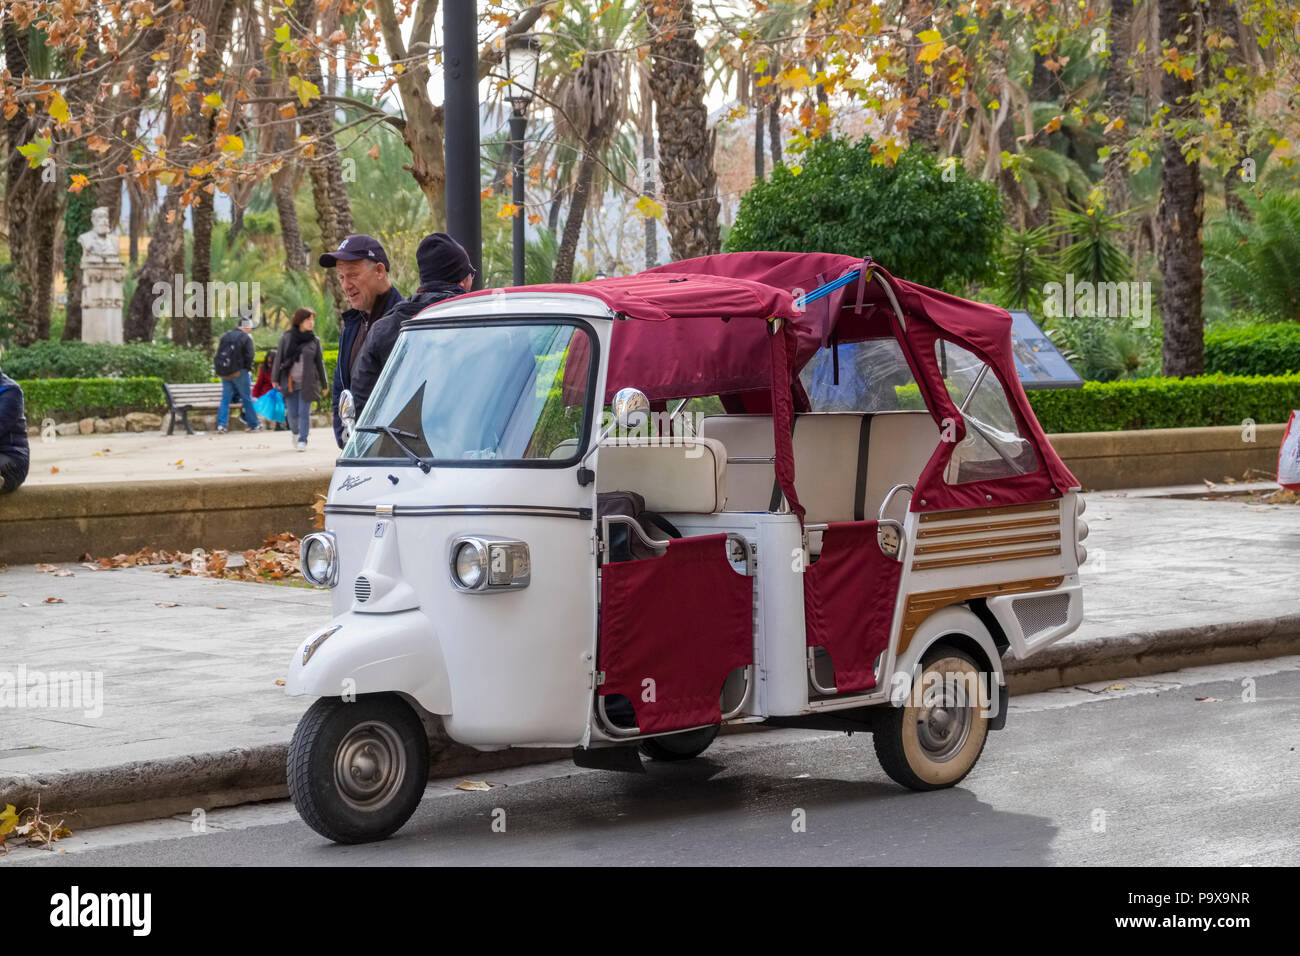 Taxi Taxi Touristique, tricycle, Palerme, Sicile, Italie, Europe Photo Stock